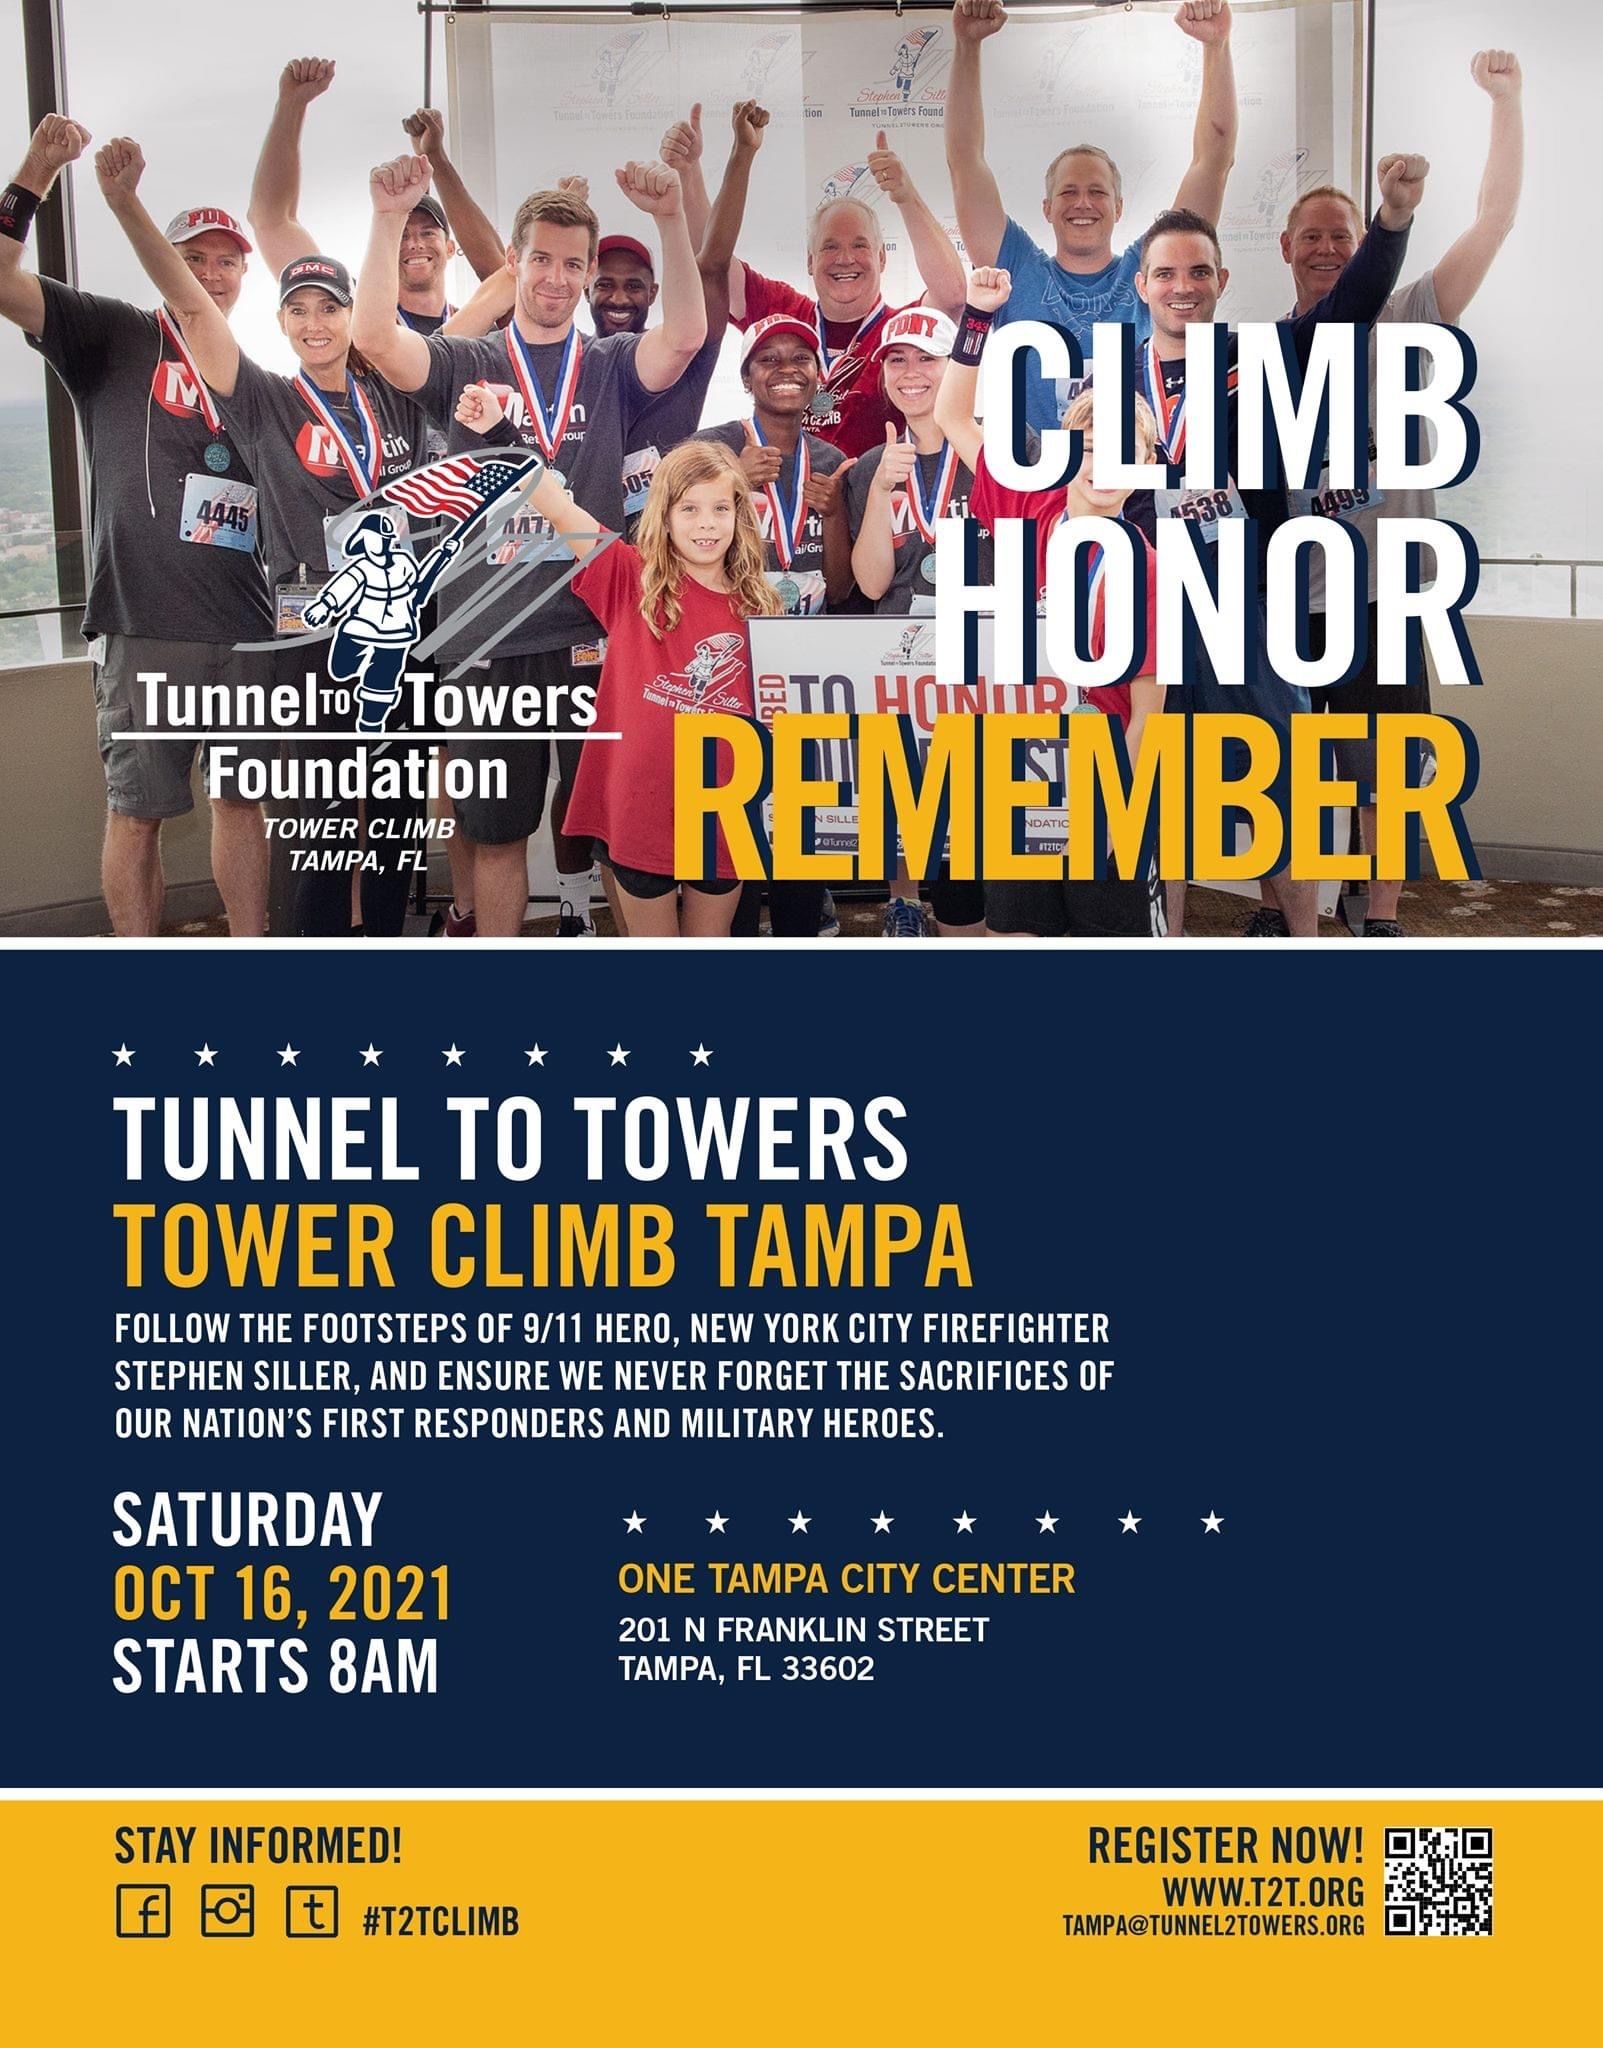 Stair climb October 16 benefitting wounded veterans and fallen first responders